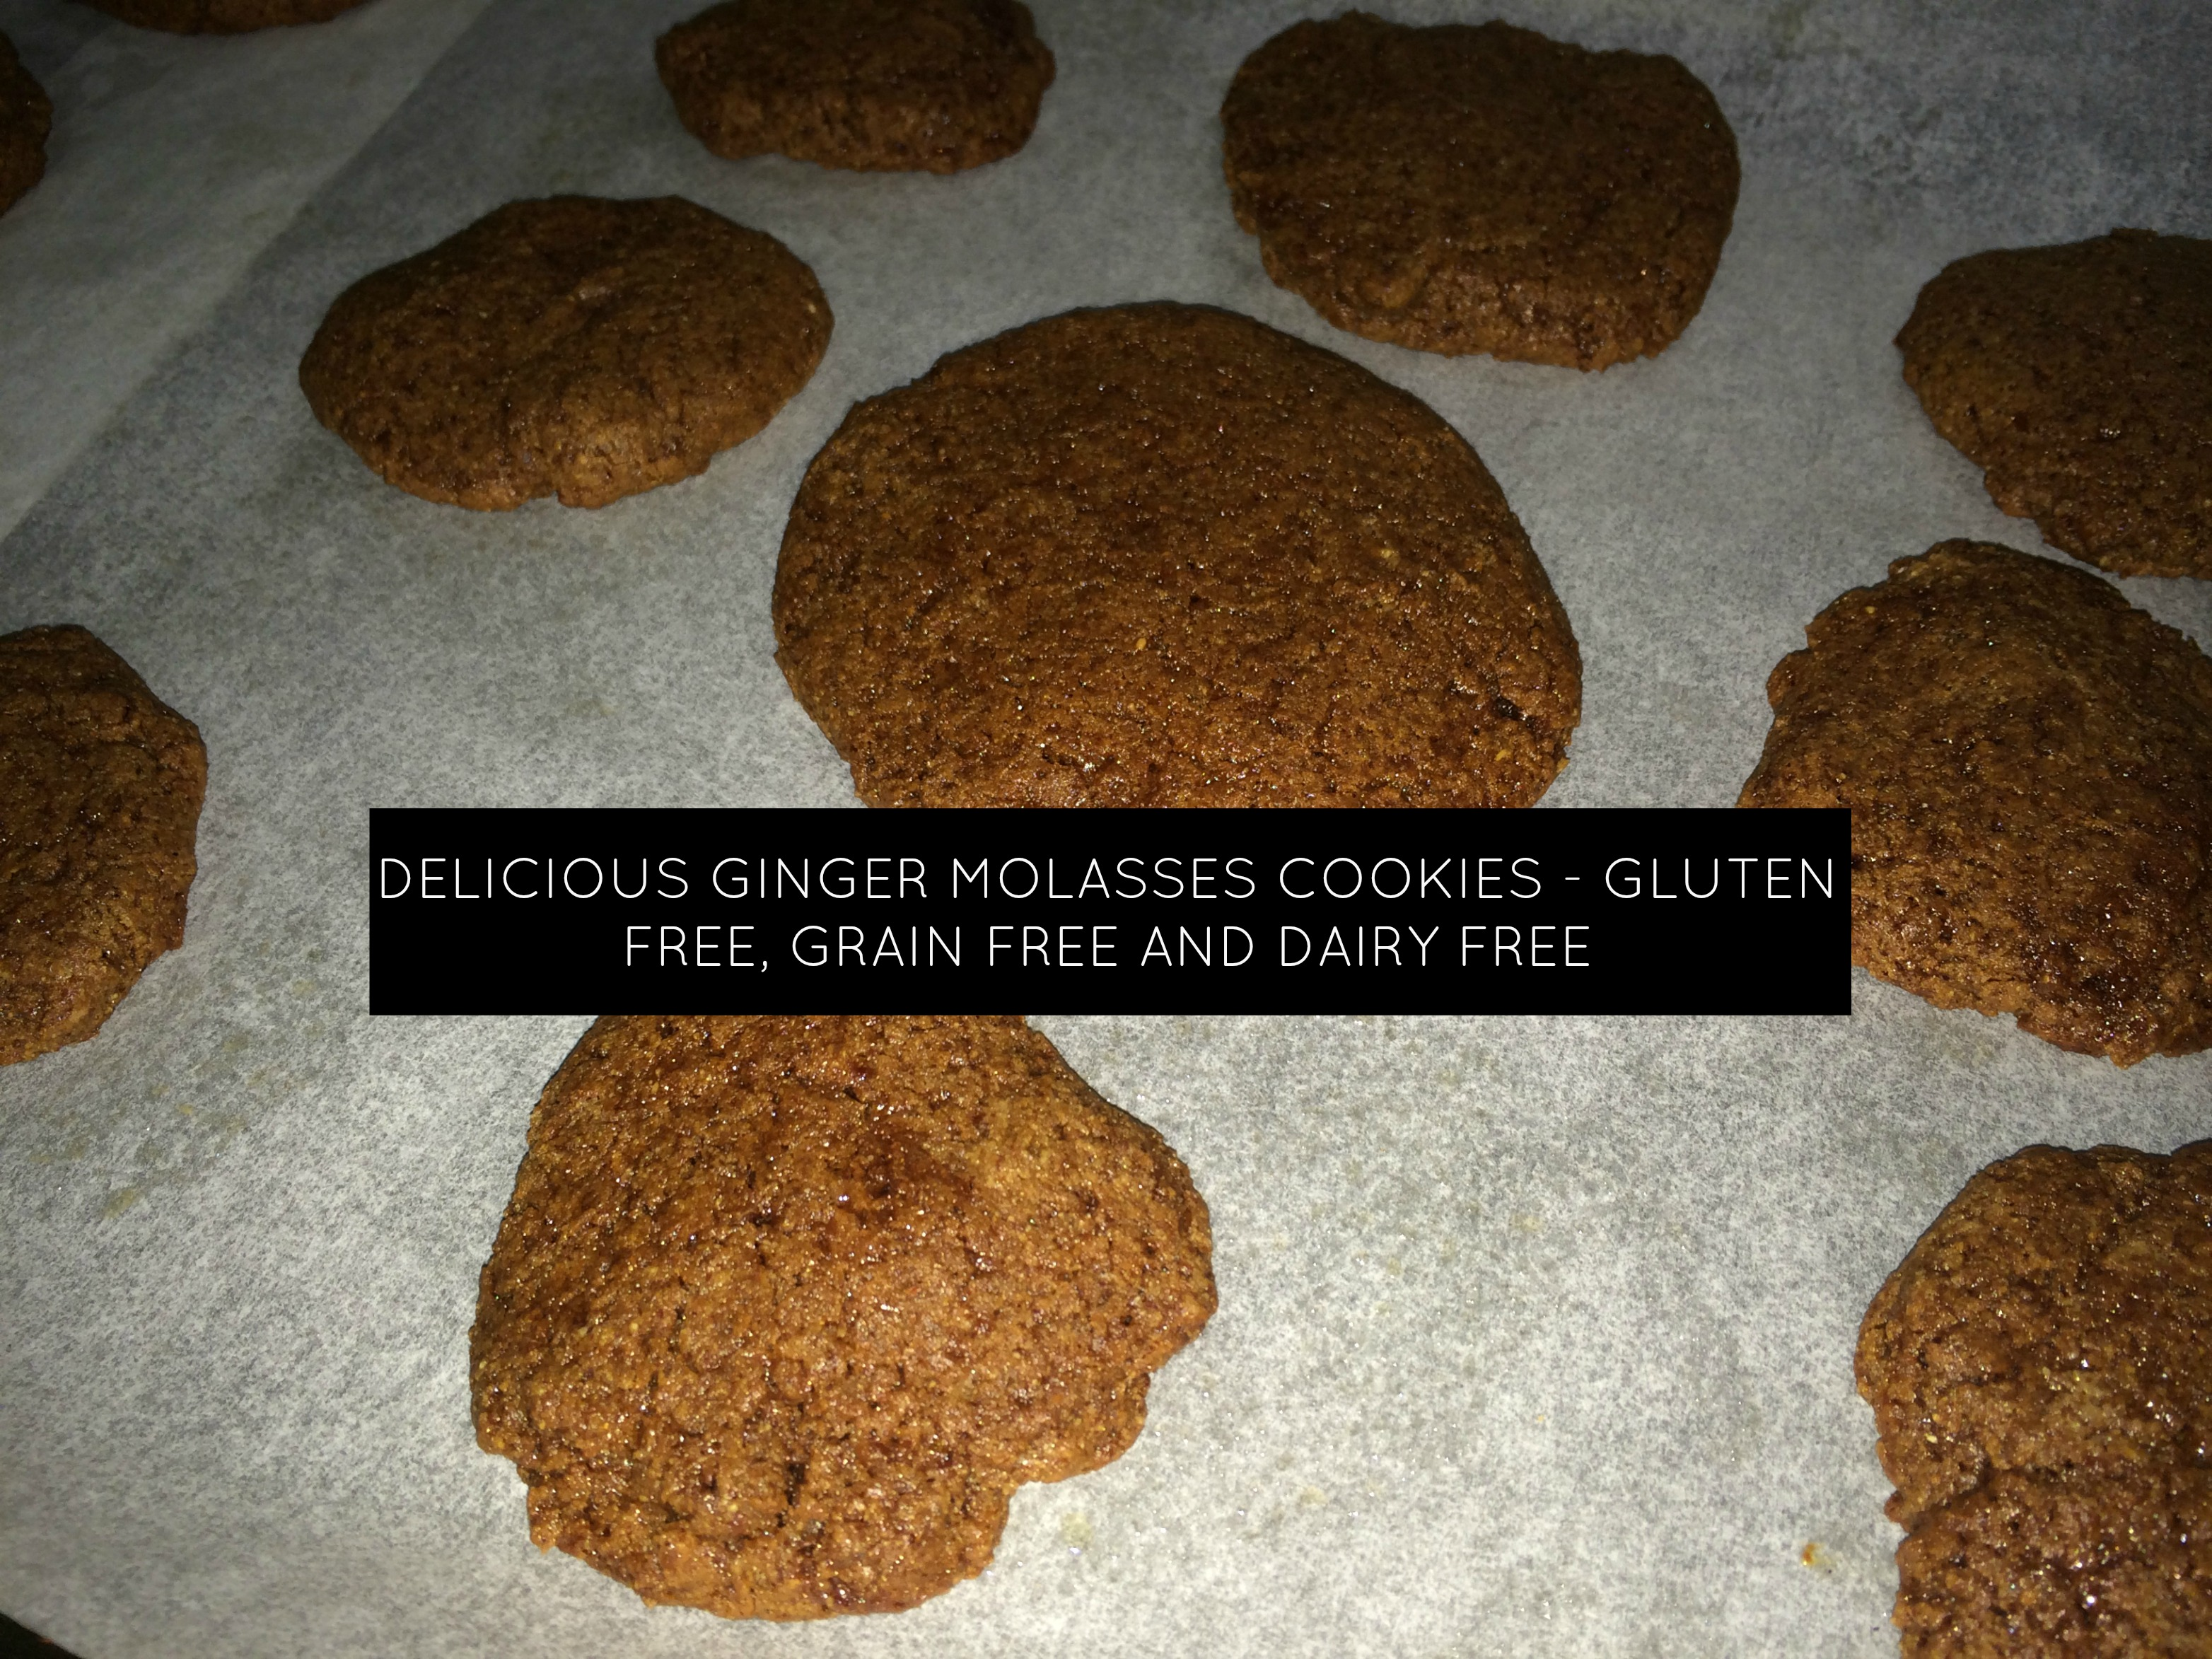 Delicious Ginger Molasses Cookies Gluten Free, Grain Free & Dairy Free